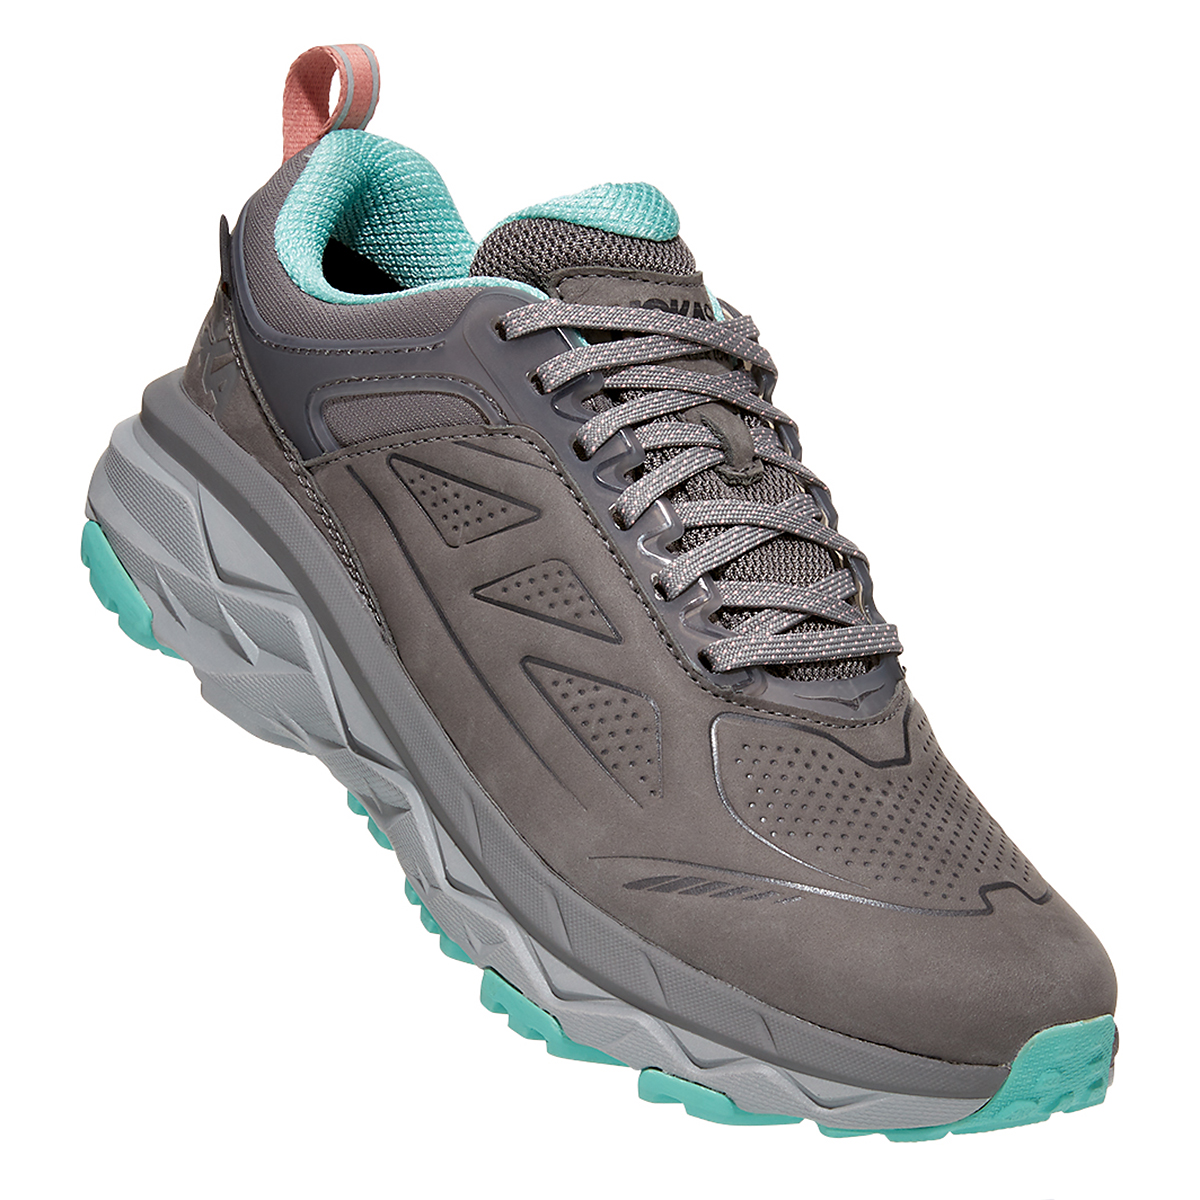 Women's Hoka One One Challenger Low Gore-Tex Trail Running Shoe, , large, image 2